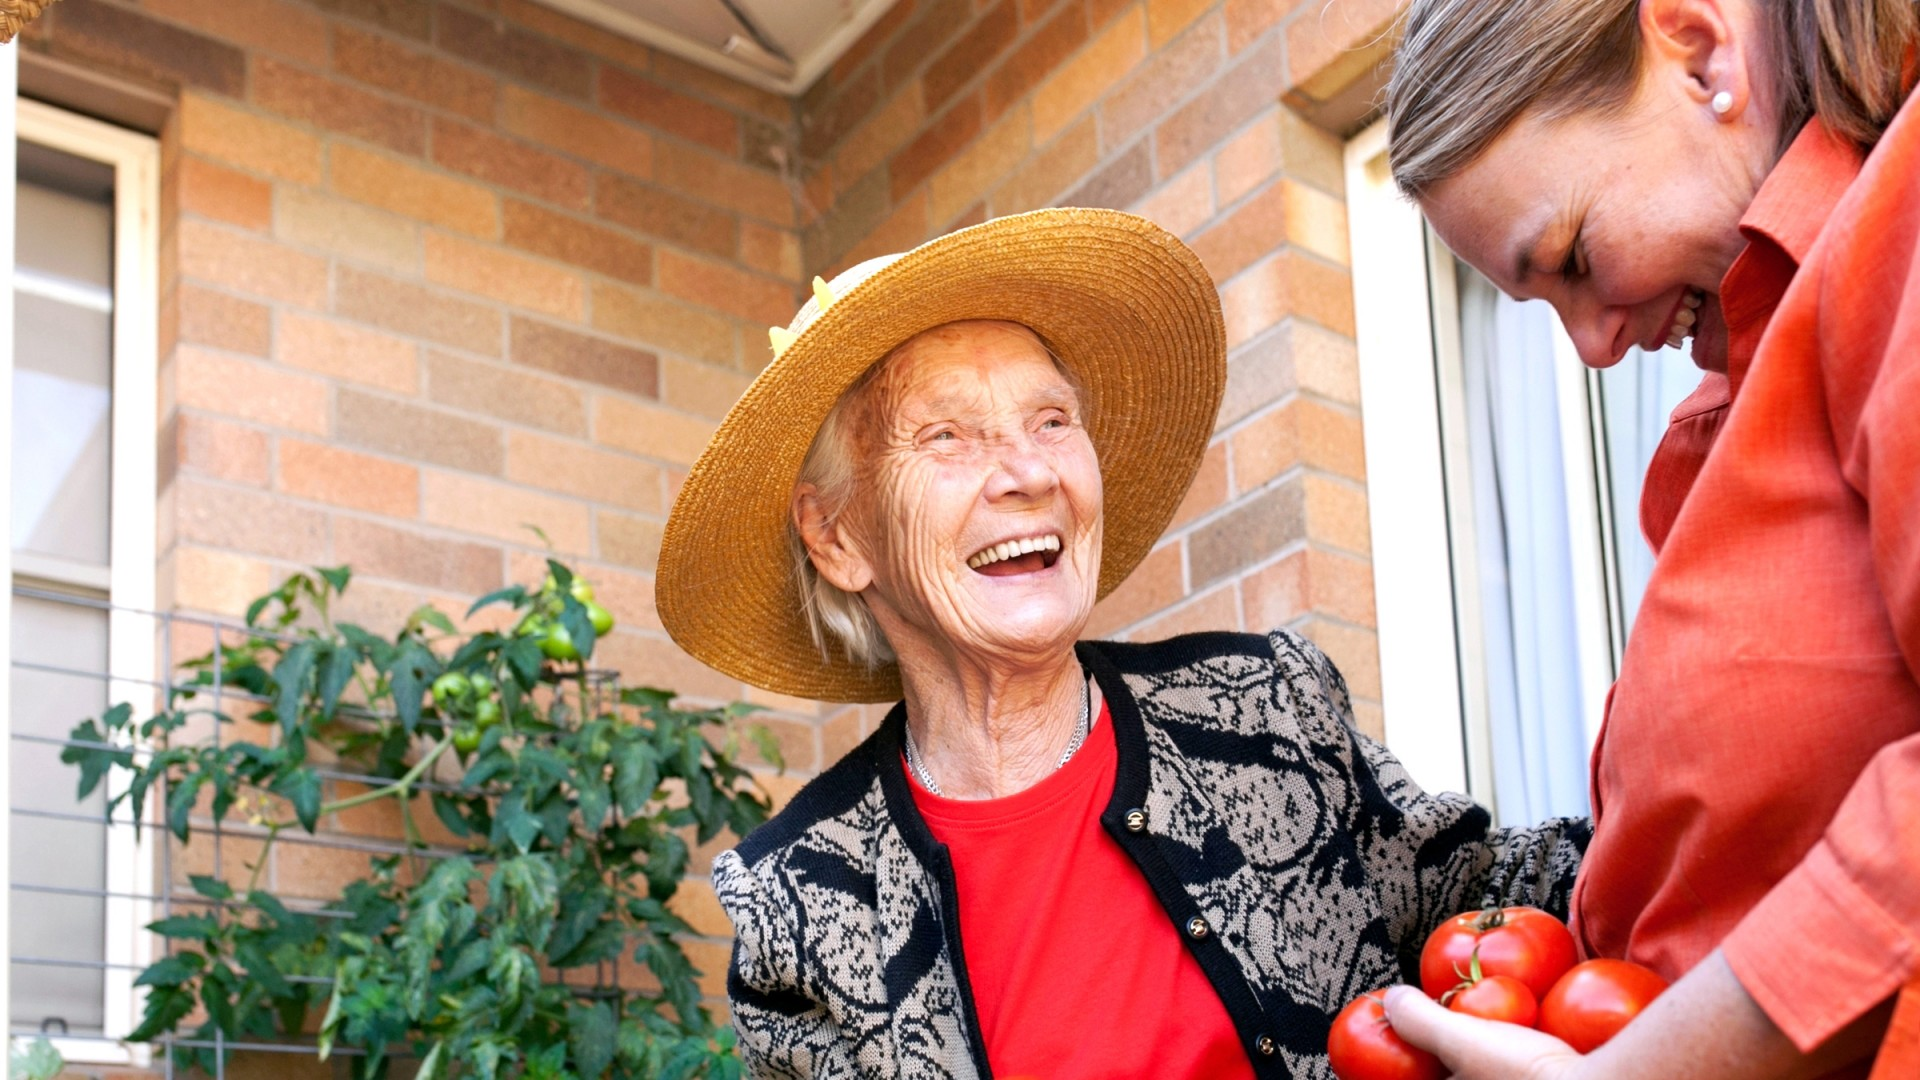 Elderly woman picking tomatoes with carer